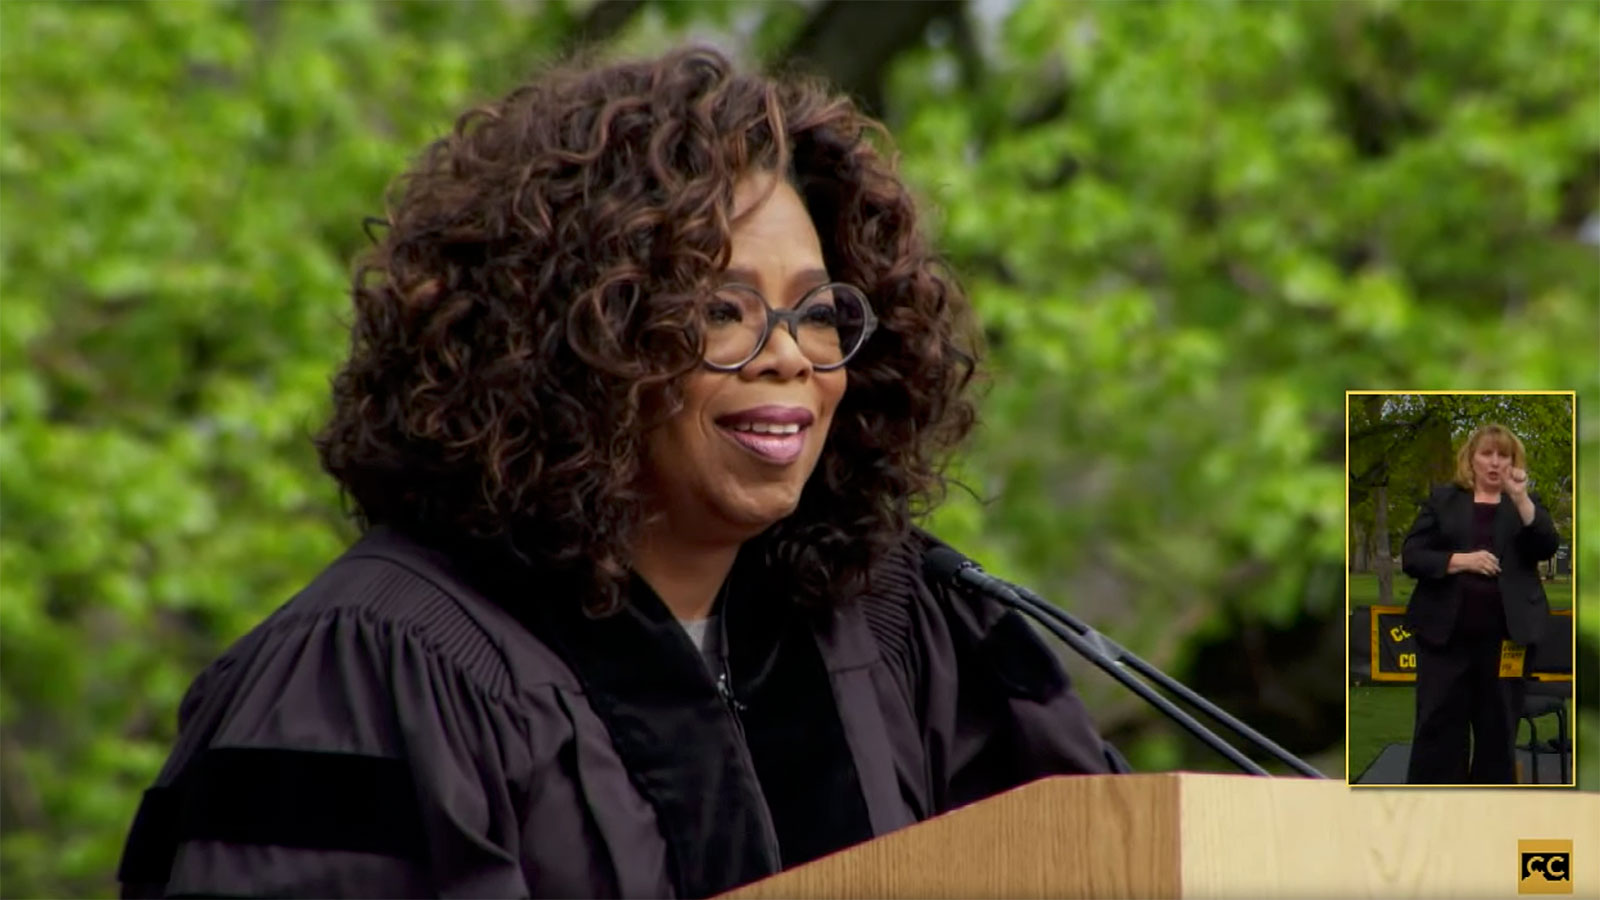 Oprah suggests graduates get a job and floss regularly in commencement address